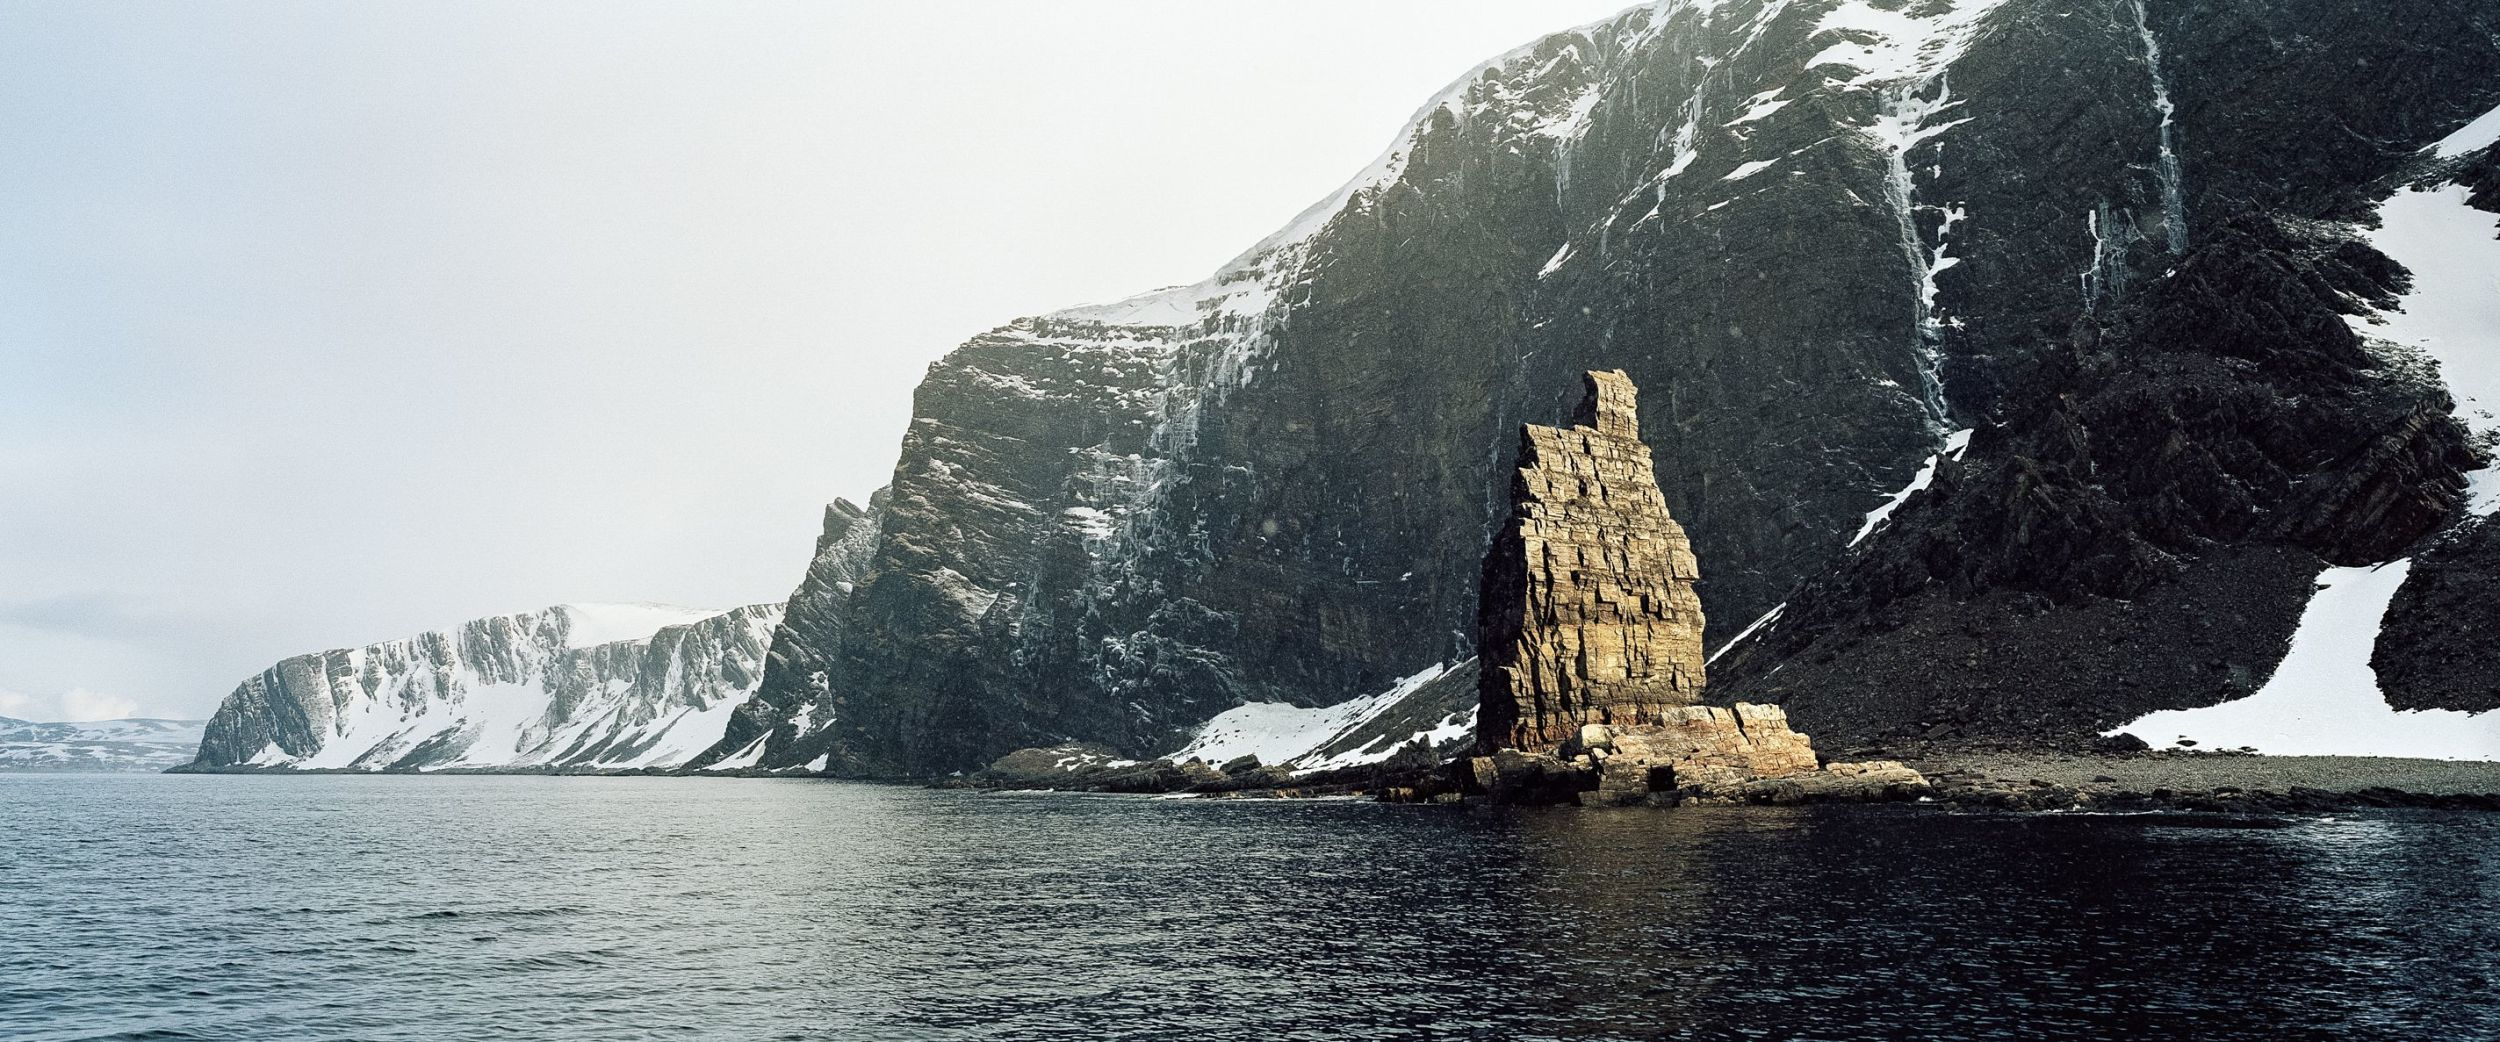 Natural stone formation looking like a church in the North of Norway.